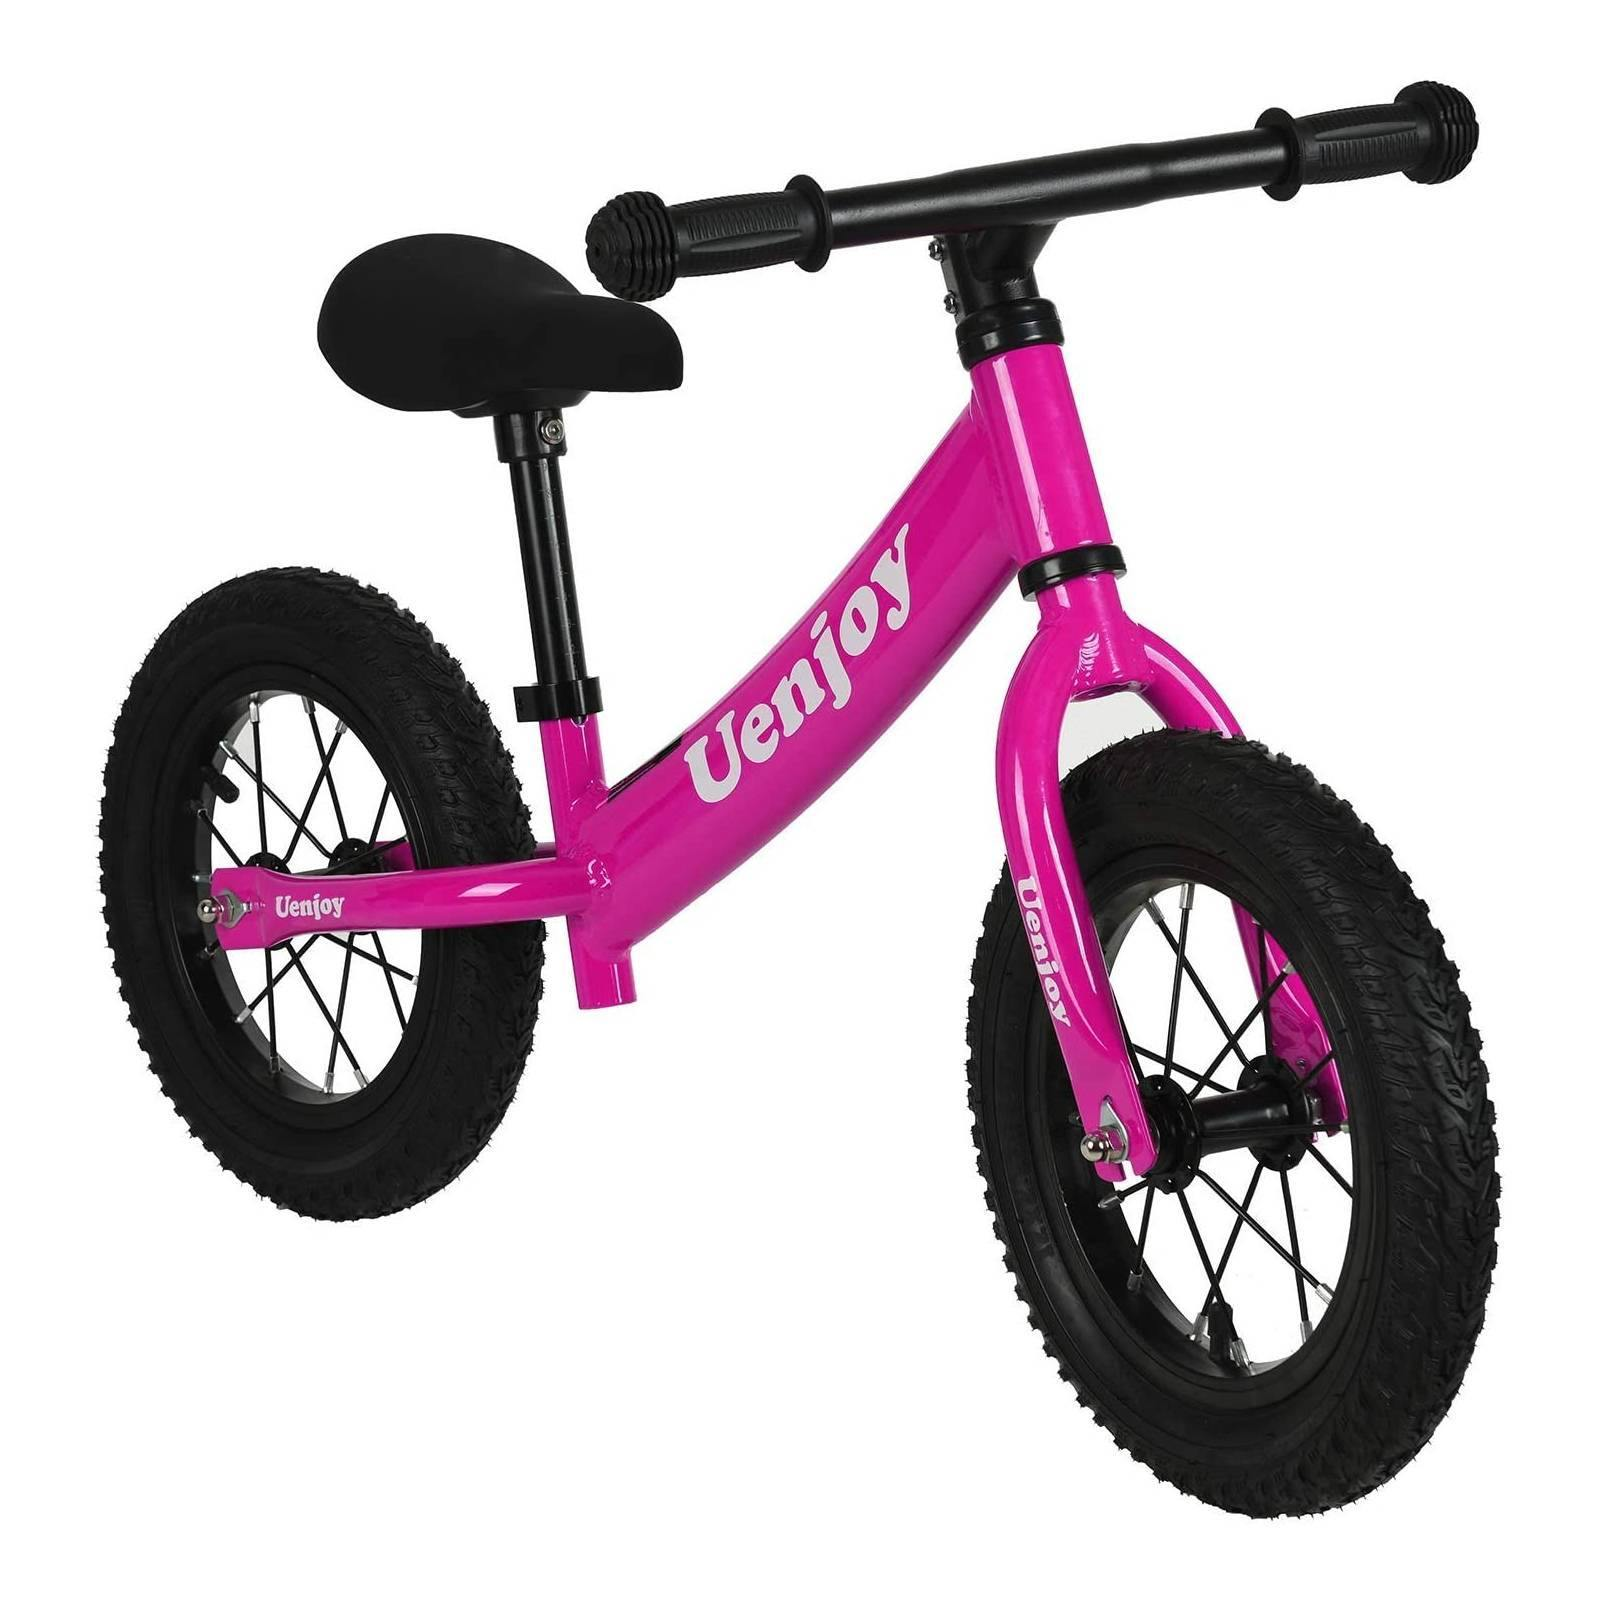 Uenjoy Kids Balance Bike No Pedal Bicycle for 2-4 Years Old, Pink 4